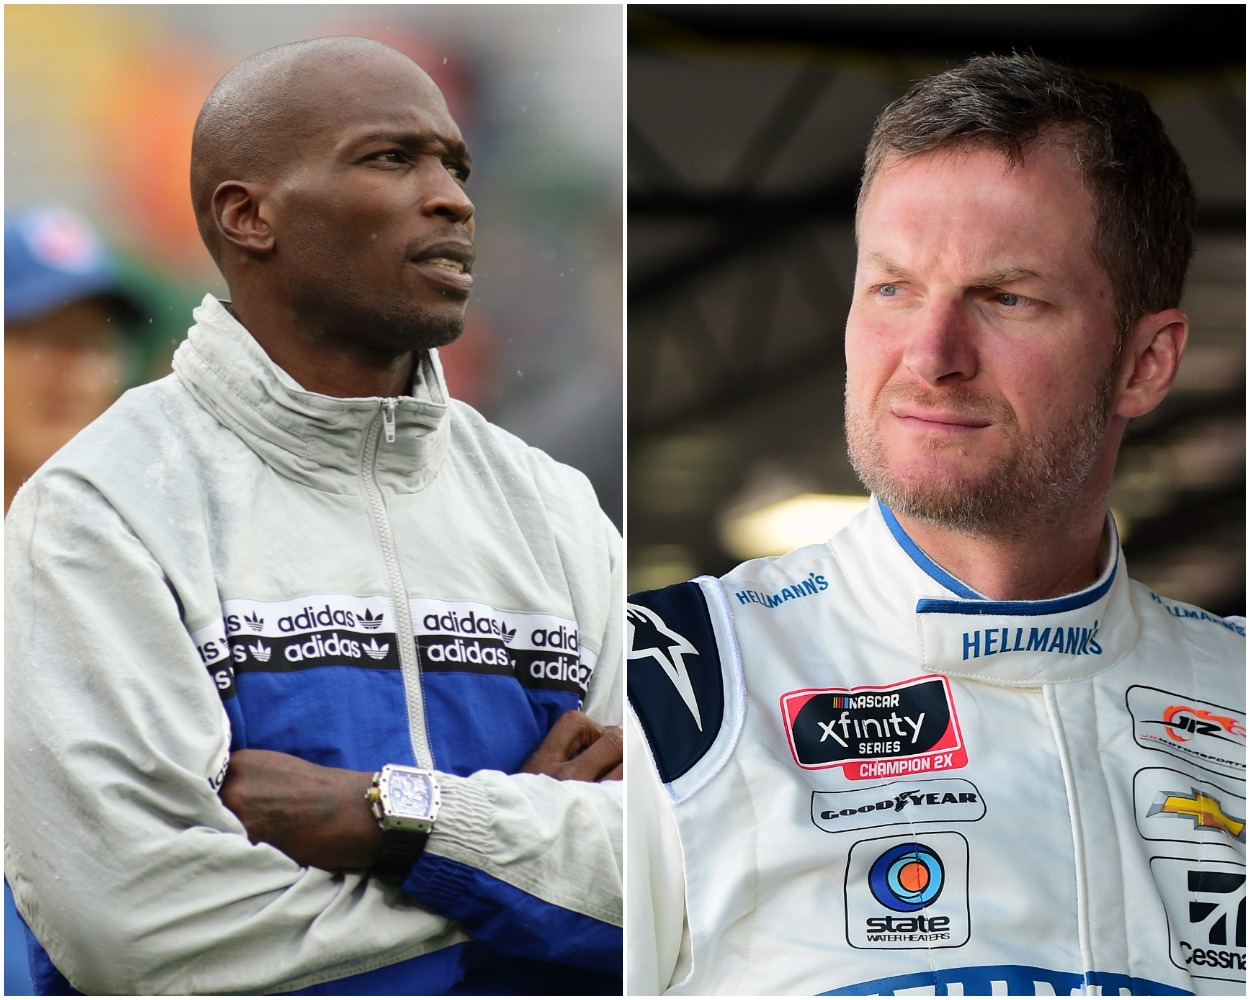 Dale Earnhardt Jr. Calls Out Chad Johnson for His 'Weird' Behavior During Ride-Along at Charlotte Motor Speedway